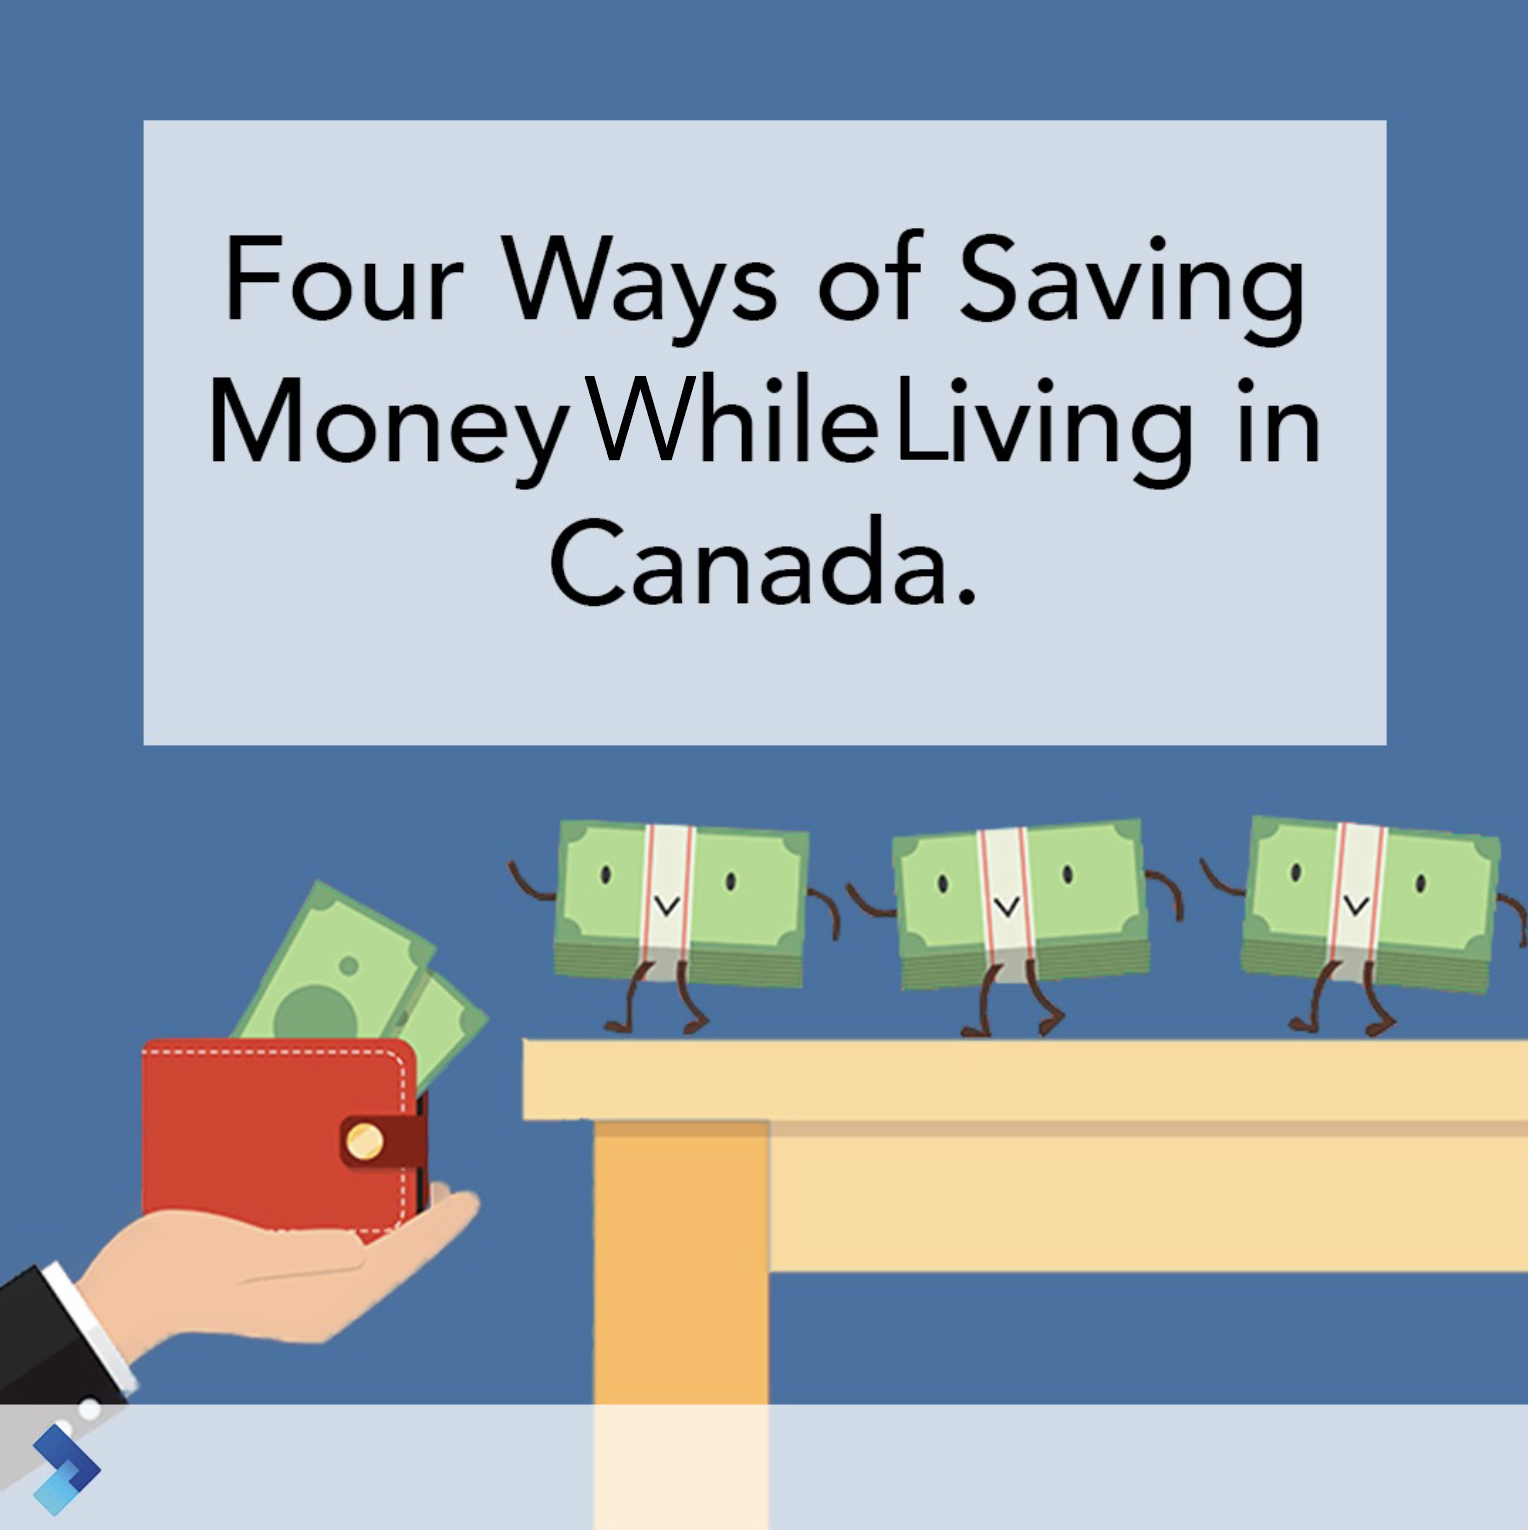 4 TIPS ON SAVING MONEY WHILE LIVING IN CANADA